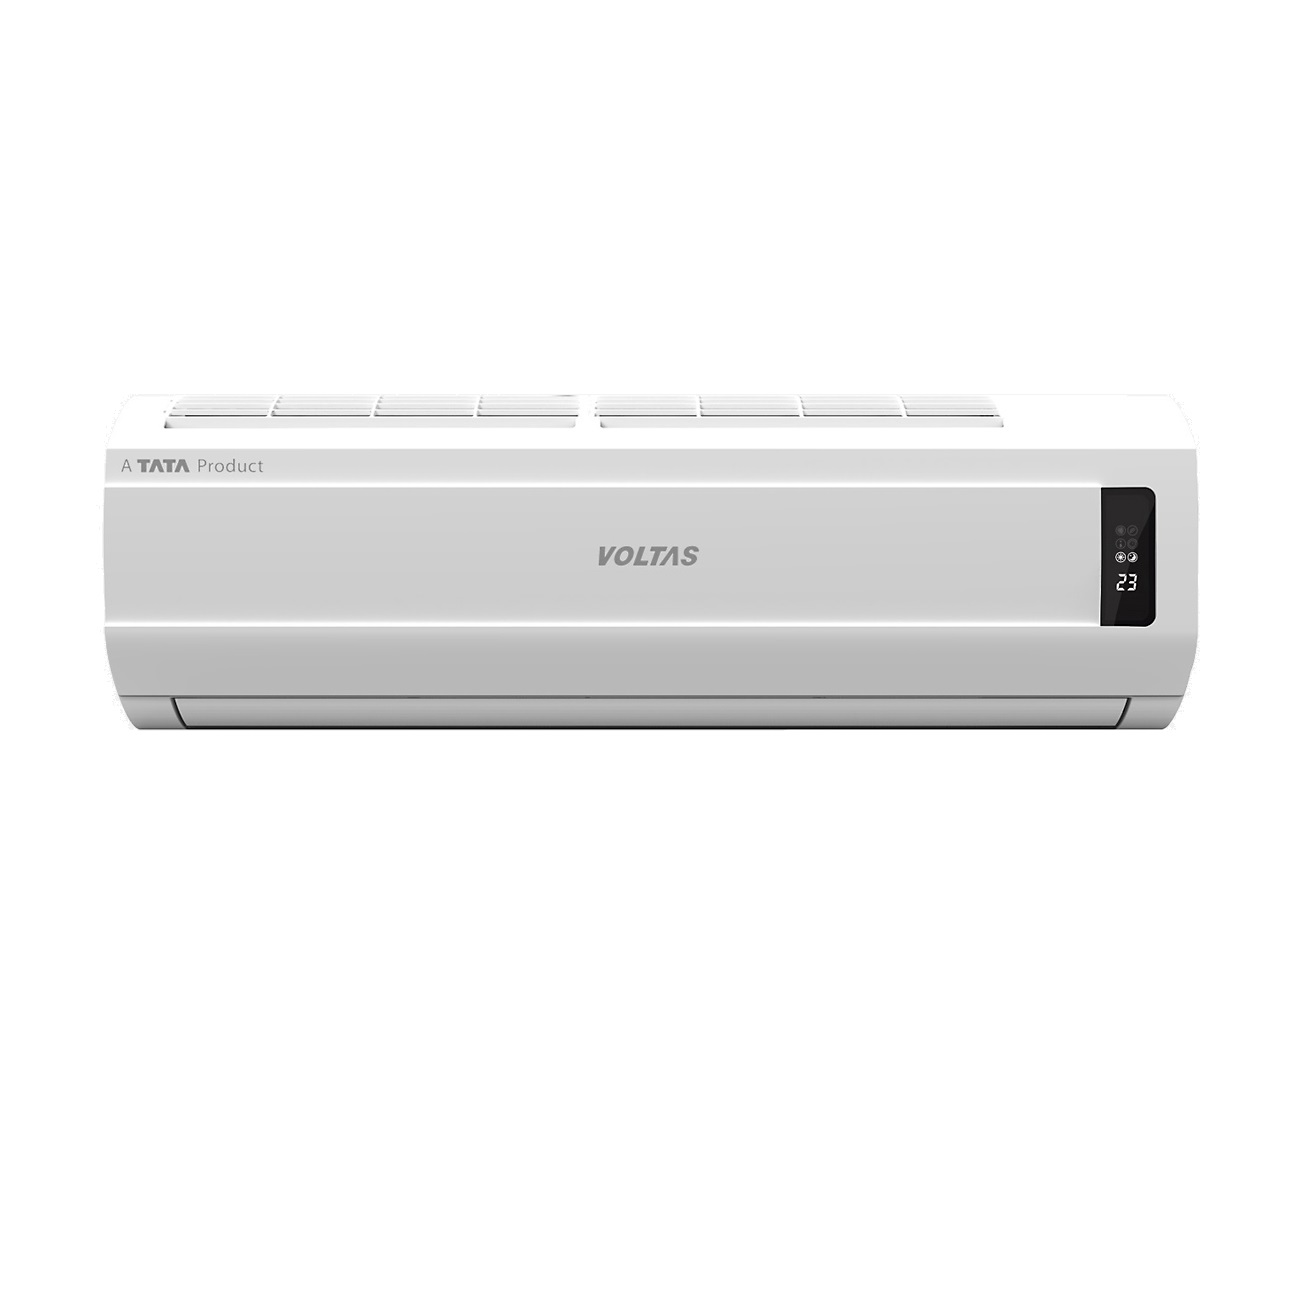 Voltas ac price 2018 latest models specifications for 0 75 ton window ac